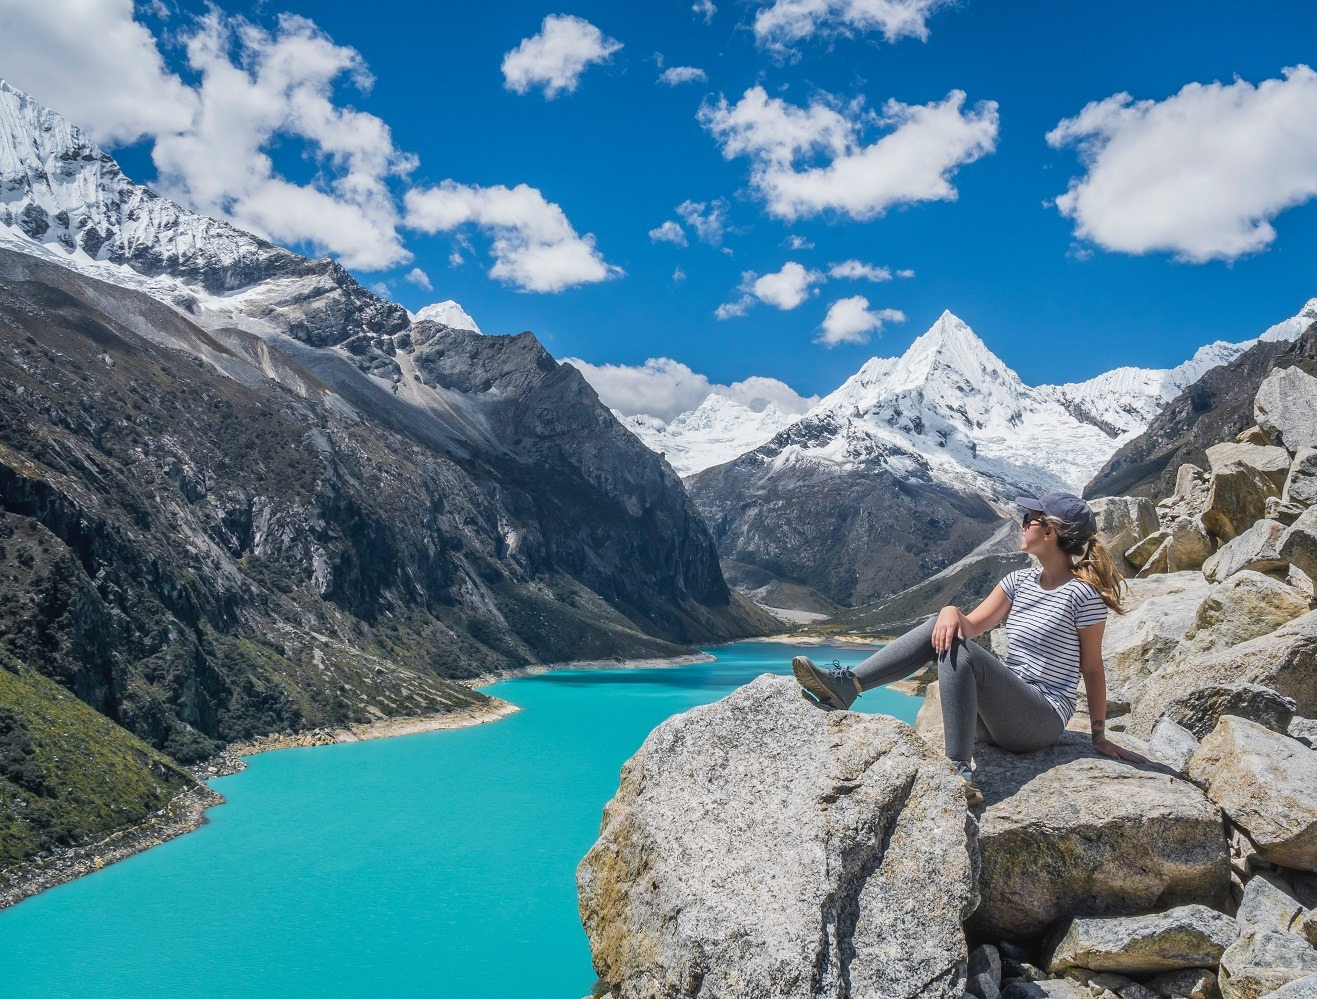 woman sits on rock ledge overlooking green lake surrounded by mountains